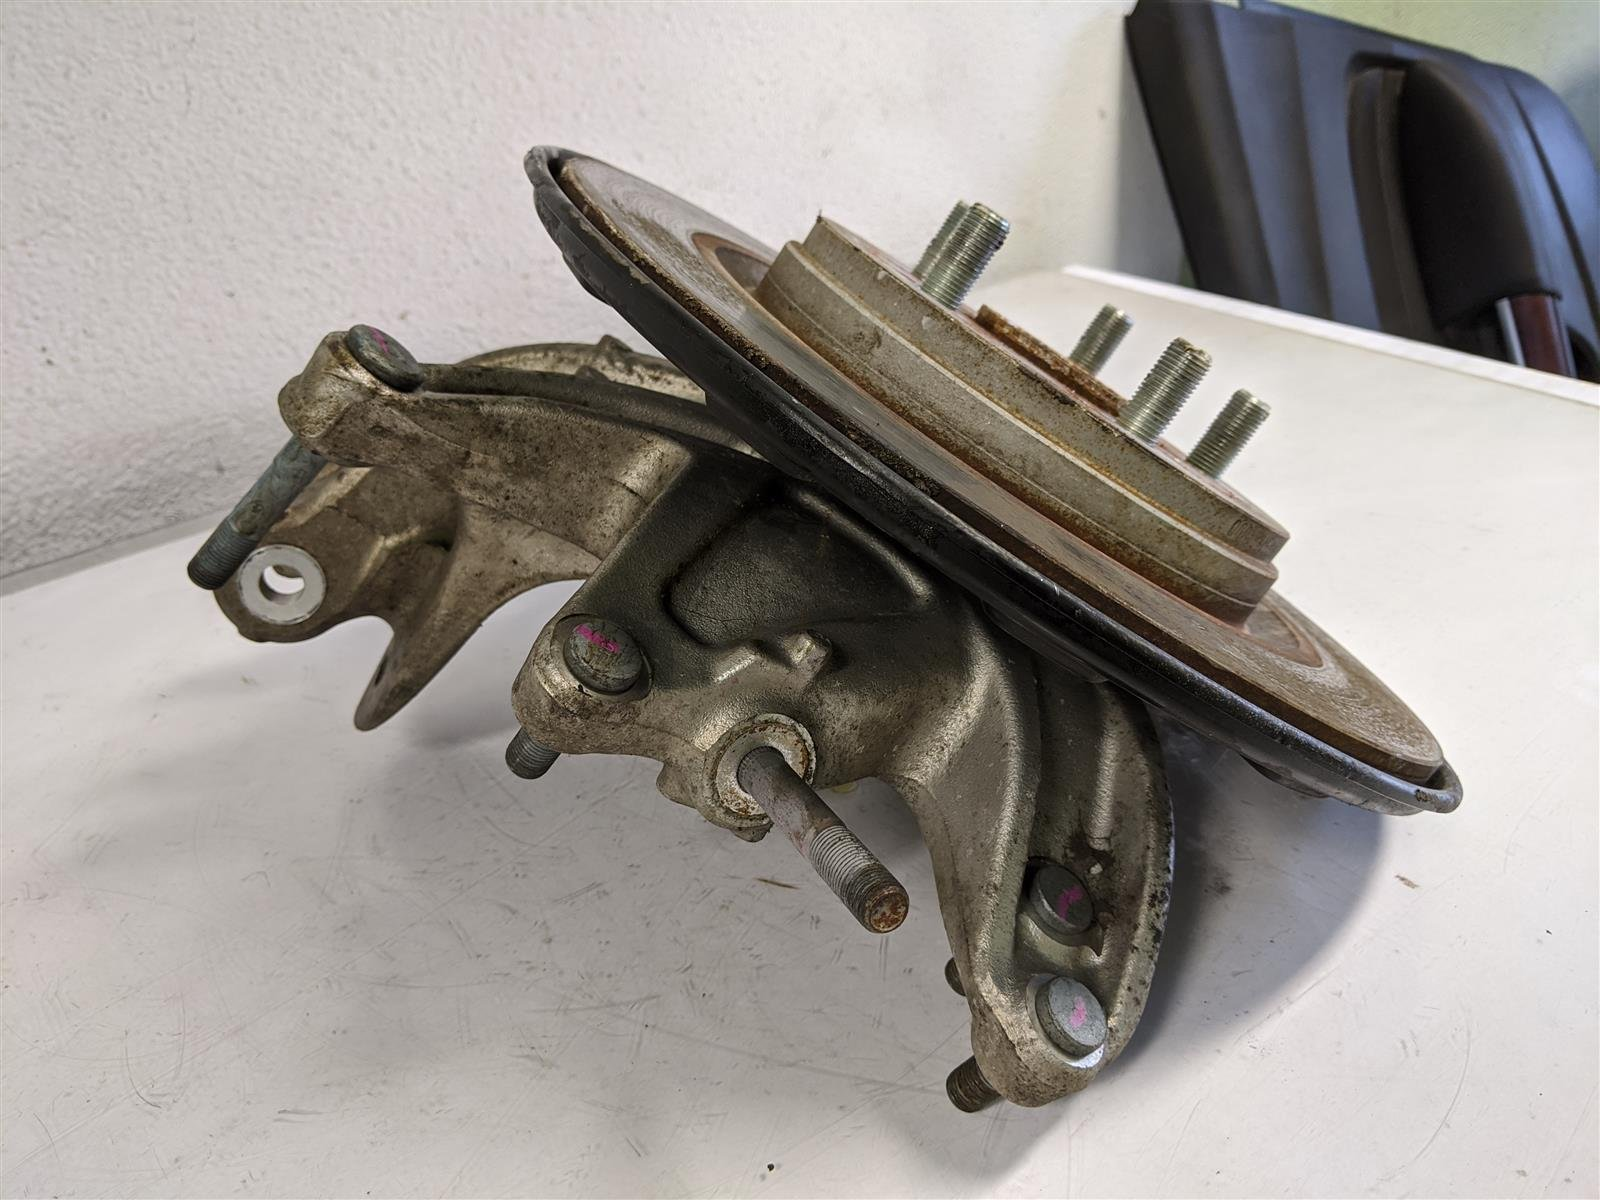 2018 Honda Odyssey Rear Passenger Spindle Knuckle Replacement